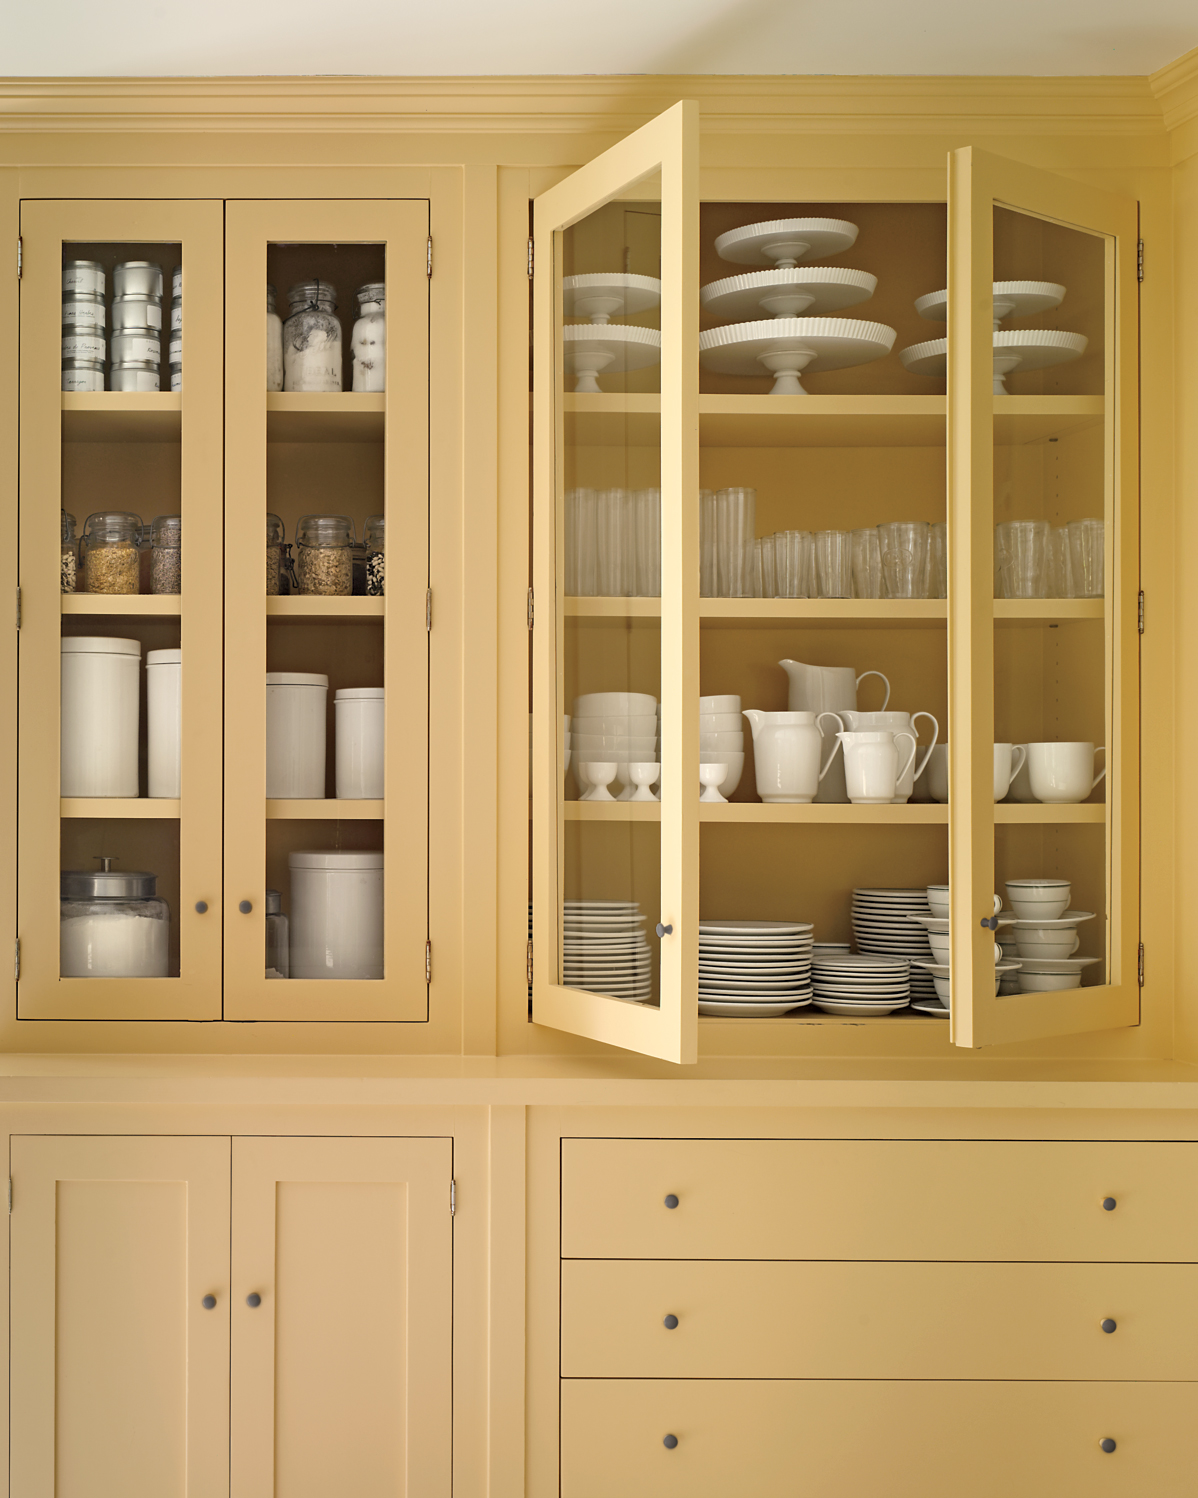 marthas-kitchen-cupboards-mld107949.jpg